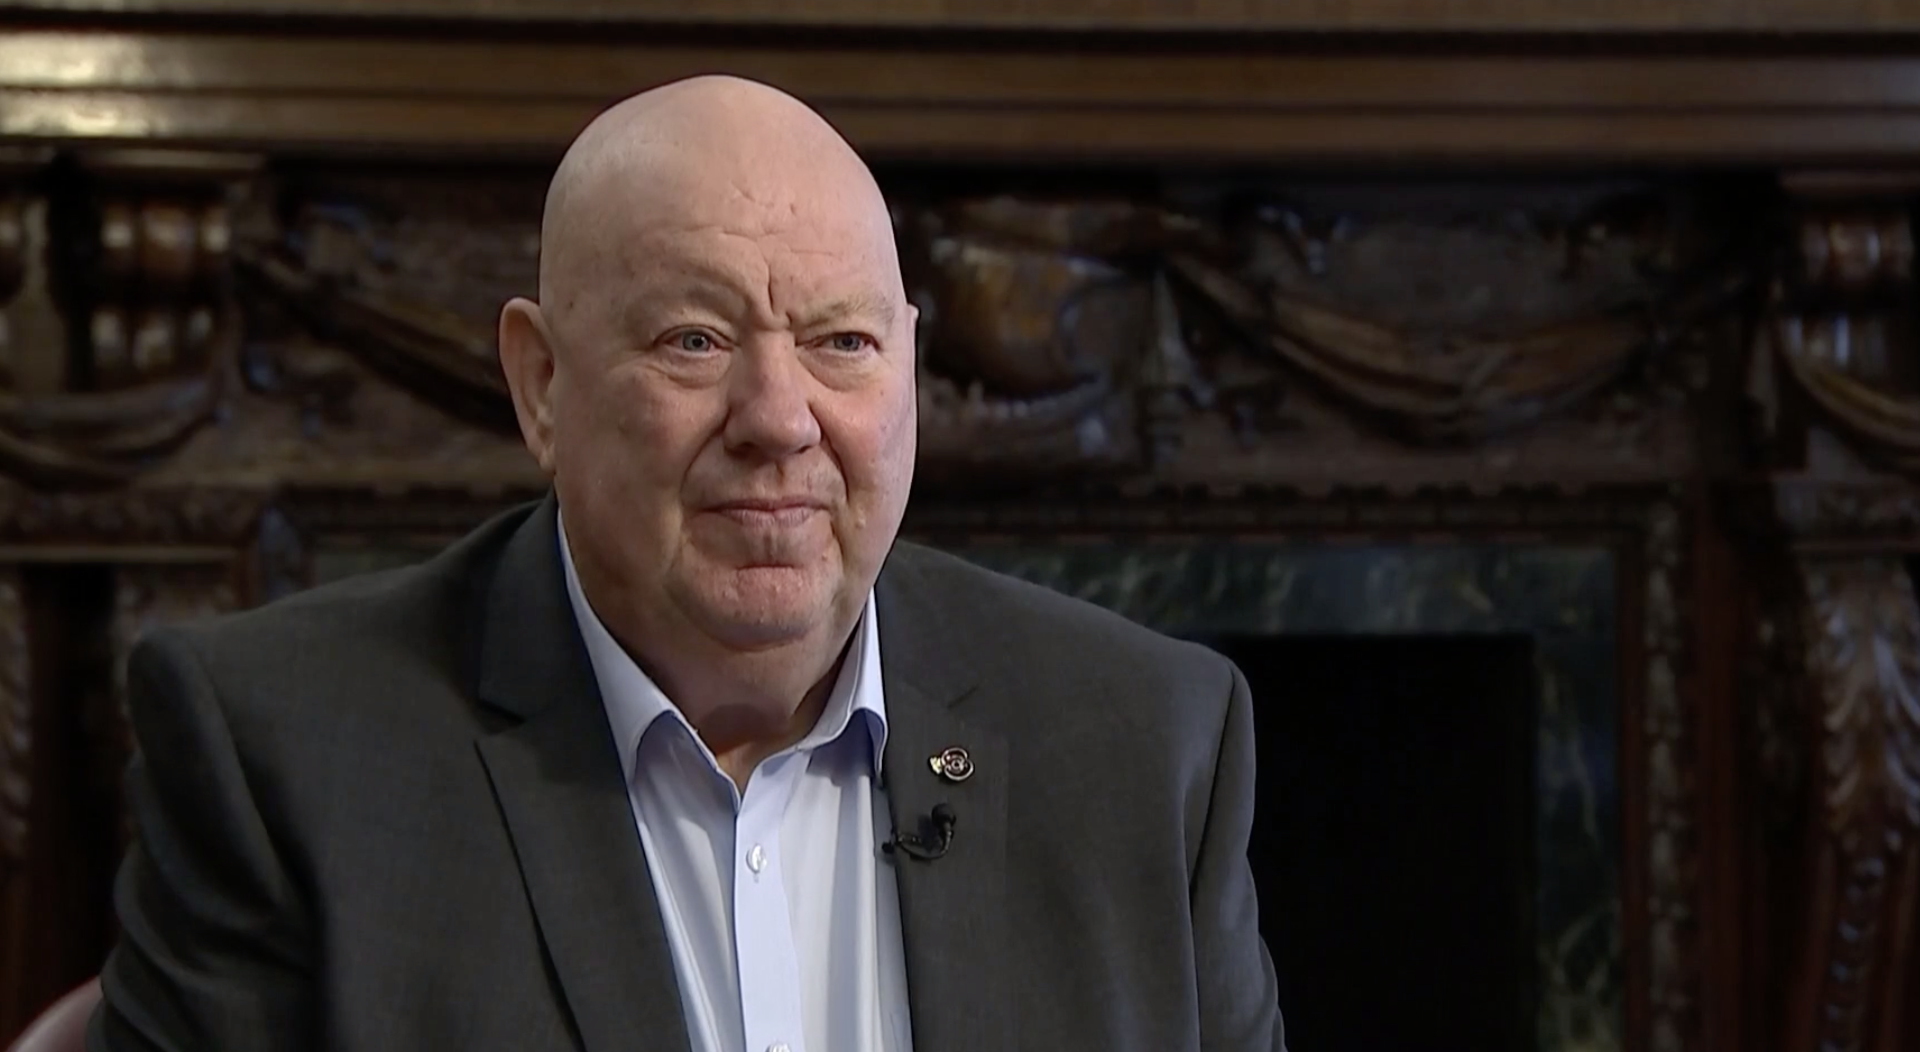 Liverpool Mayor Joe Anderson To Step Aside Following Arrest Channel 4 News Joe 90 is the world's most audacious secret agent and he's only 9 years old! liverpool mayor joe anderson to step aside following arrest